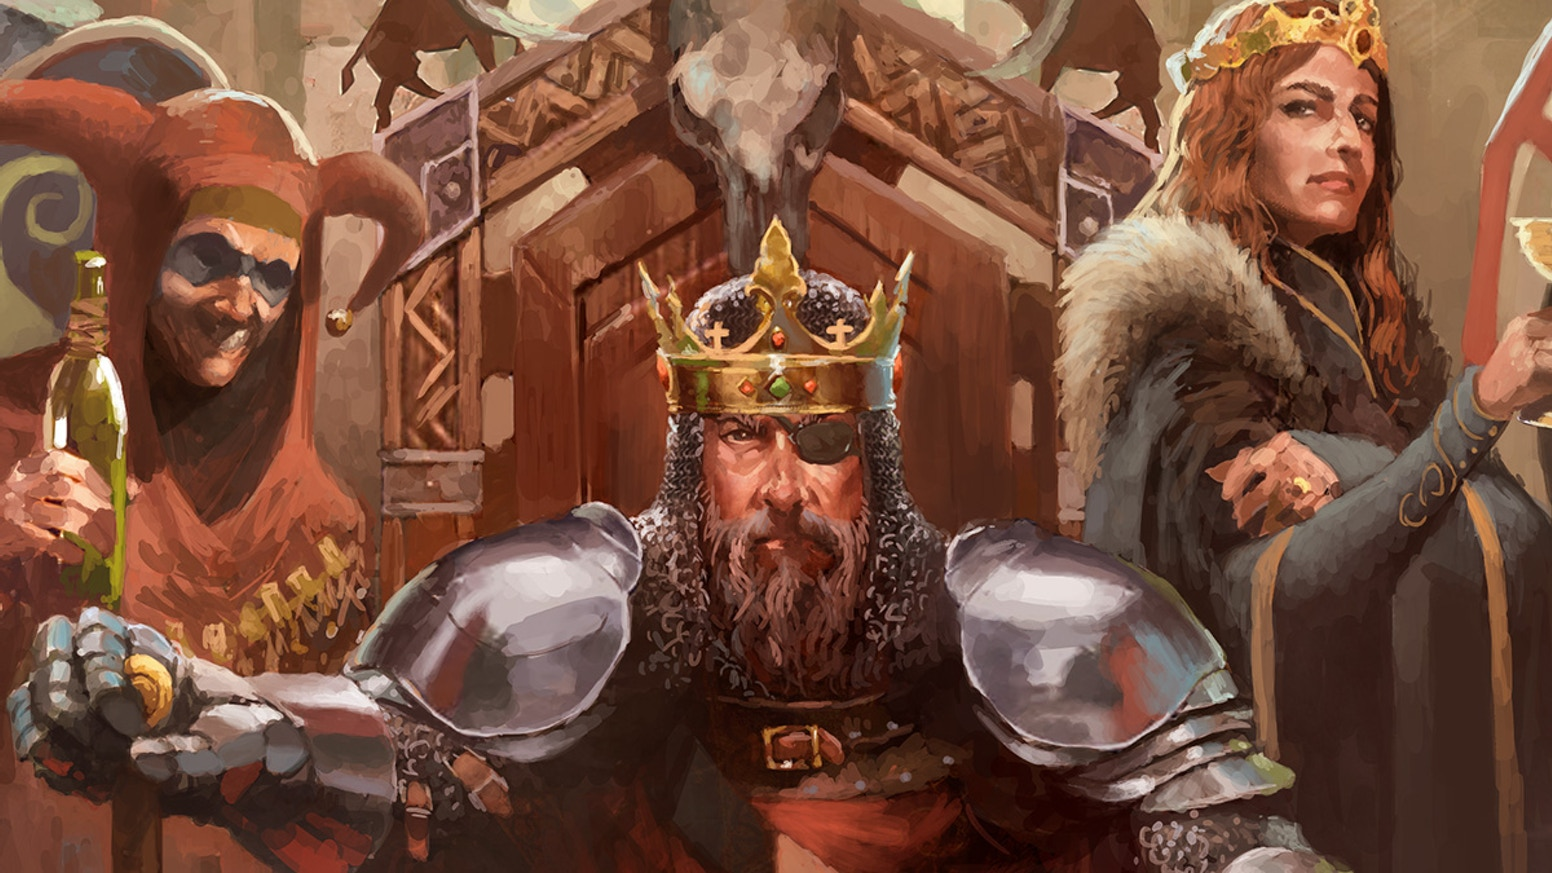 A grand strategy board game of rival kings and dynasties in medieval Europe, based on the acclaimed computer game Crusader Kings.